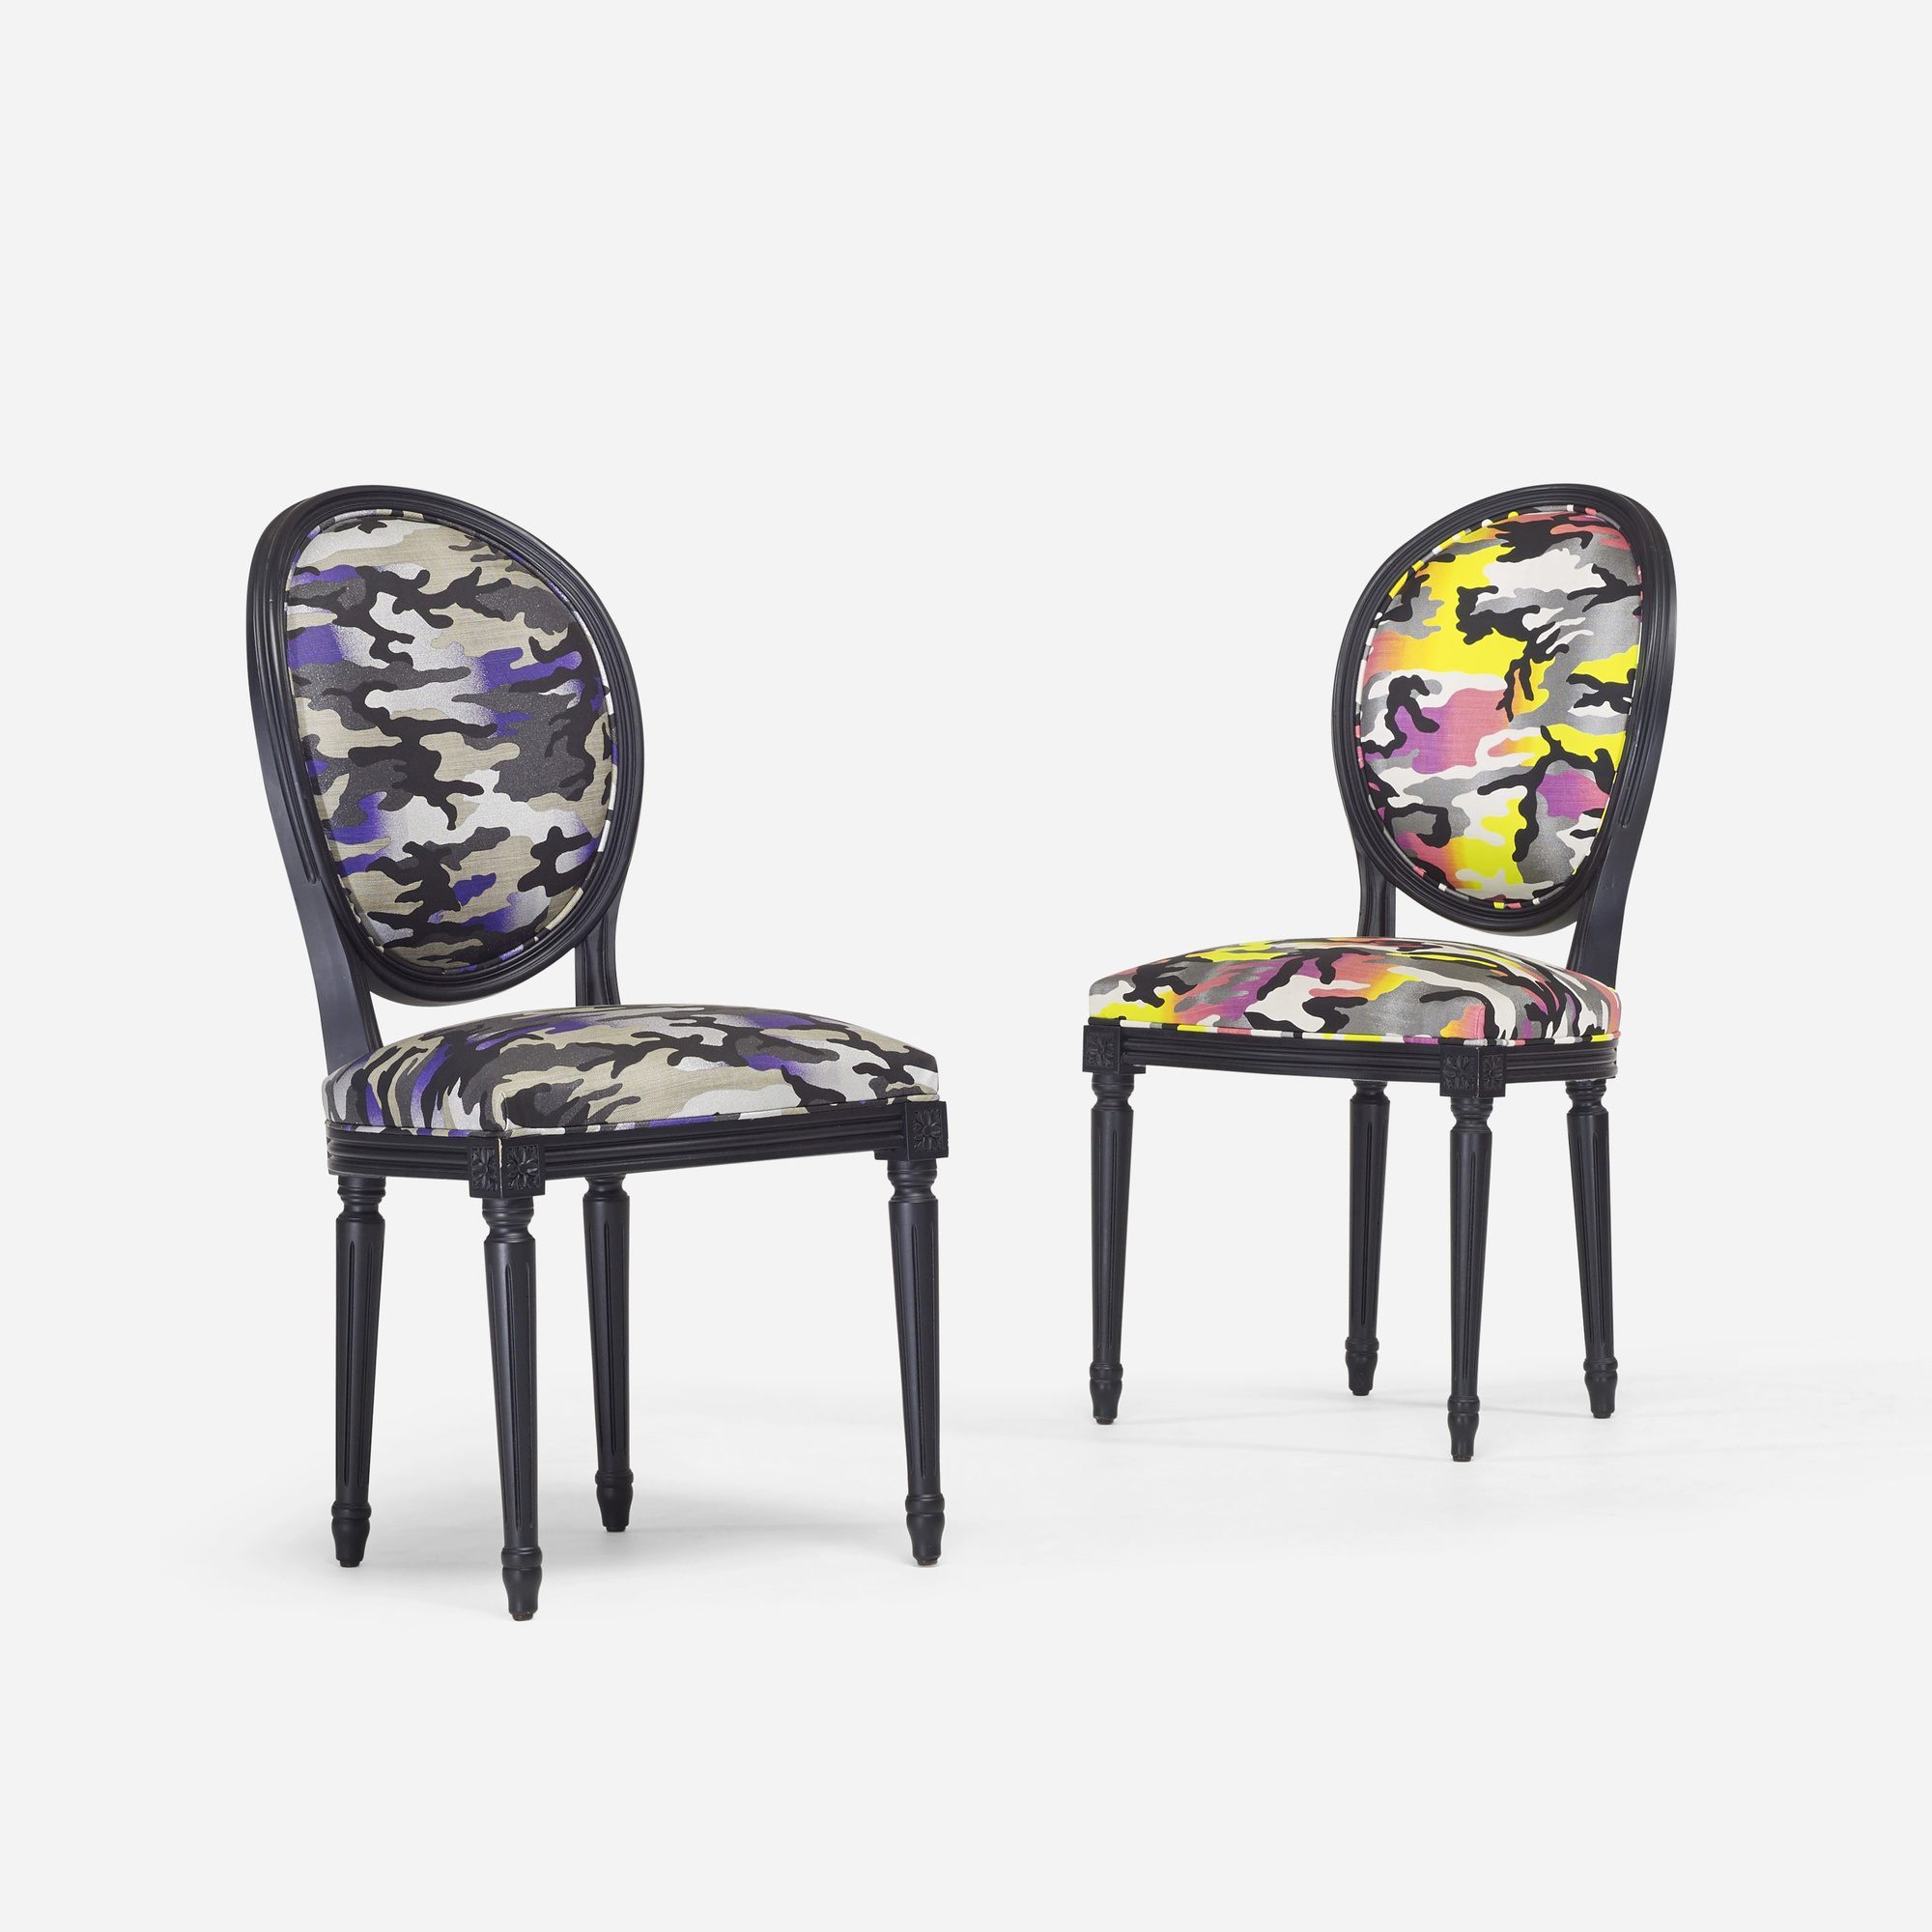 268: Anselm Reyle for Dior / custom Louis XVI chairs, pair (1 of 3)